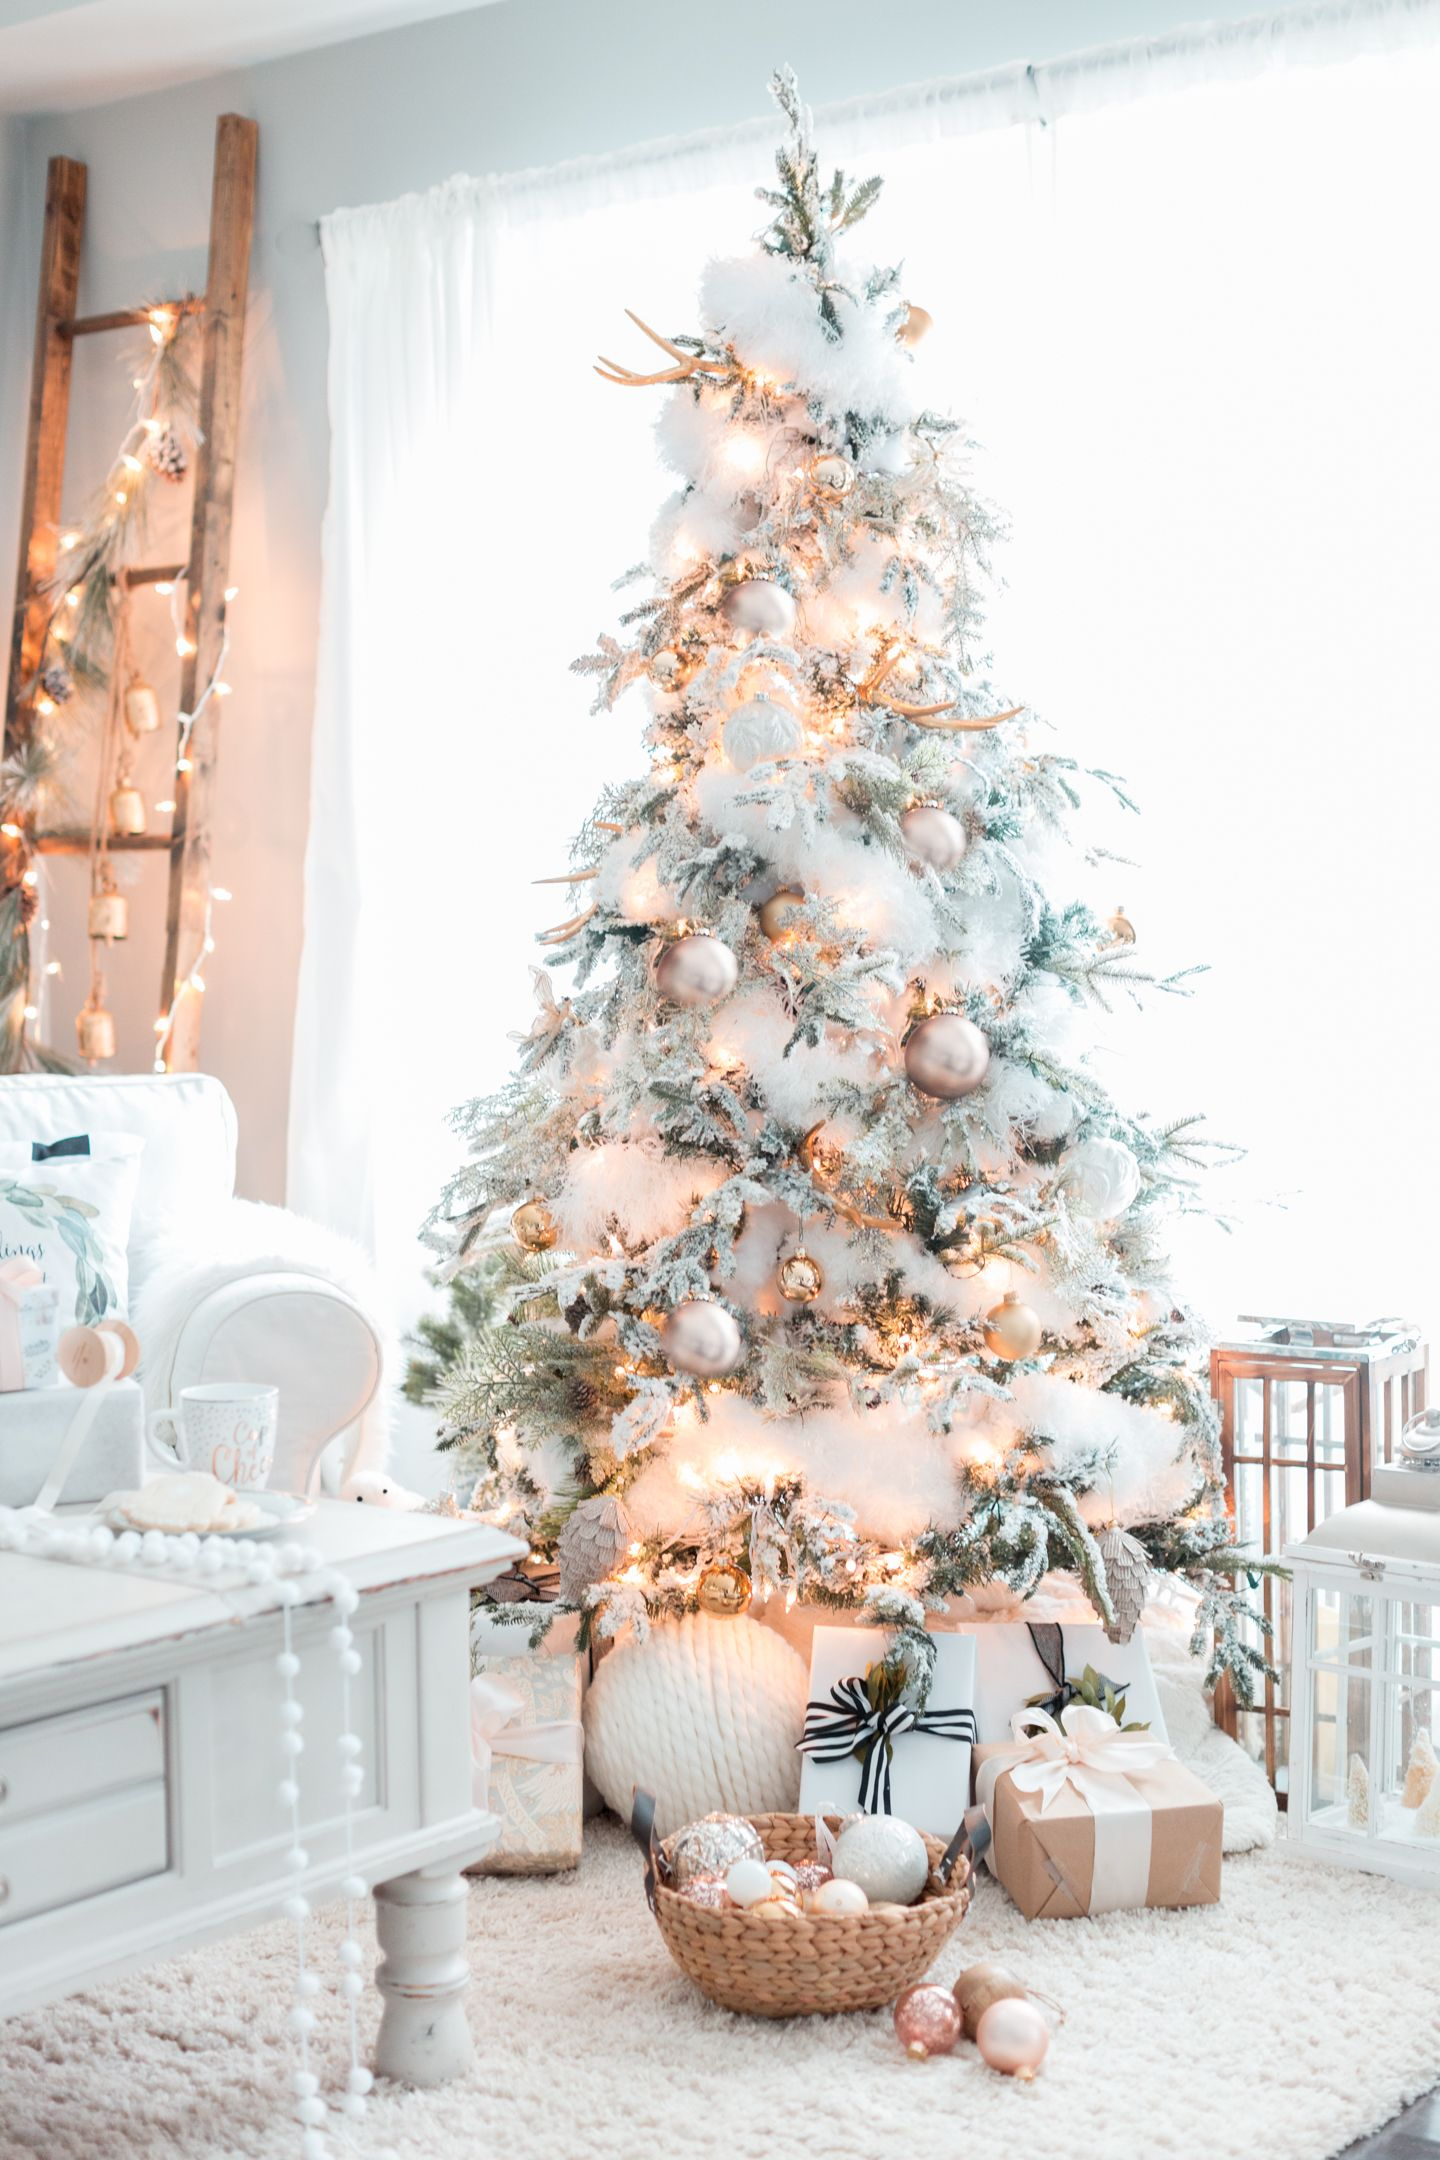 make your home a winter wonderland just in time for the festive season with help from this stunning holiday house tour from the snowy white christmas tree